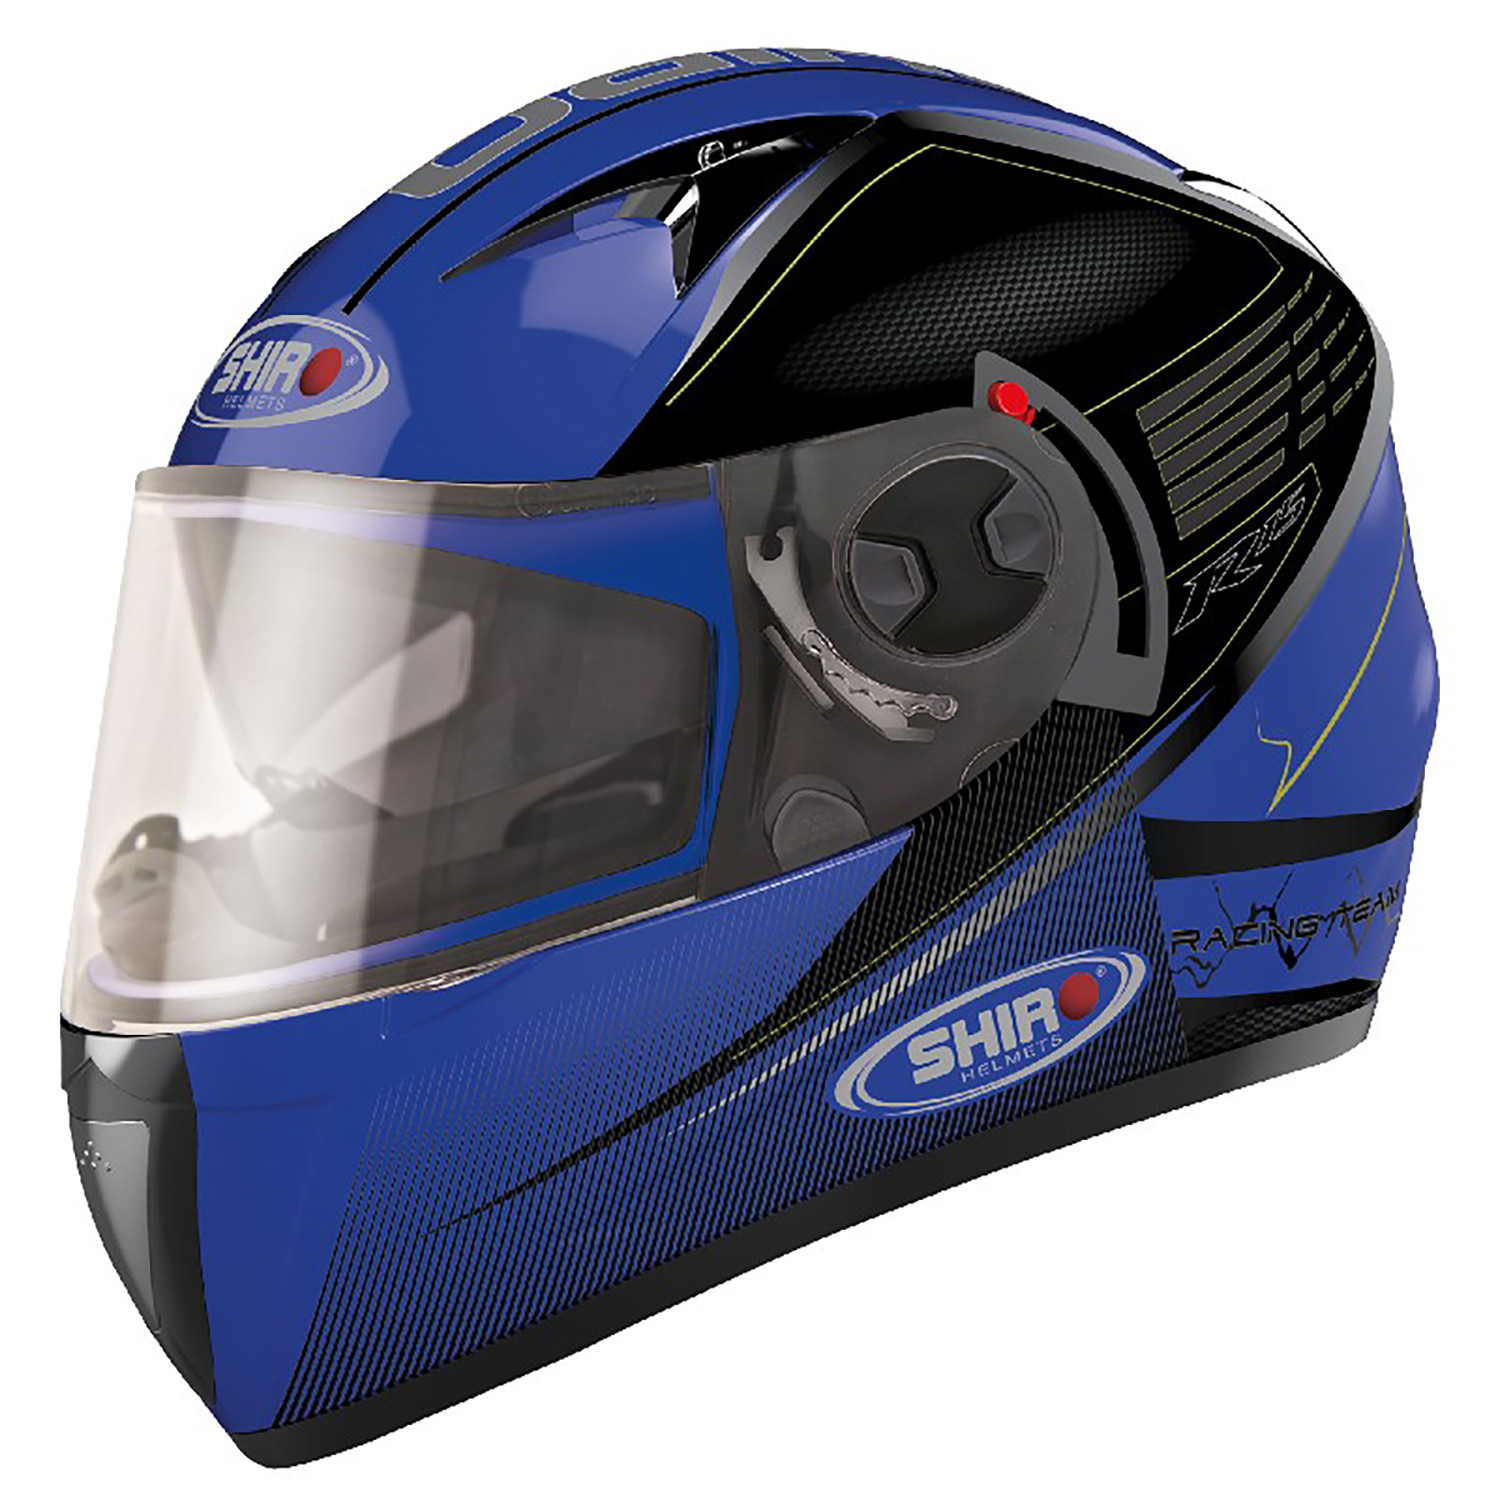 Casco Integral Shiro SH-3700 R15 Azul